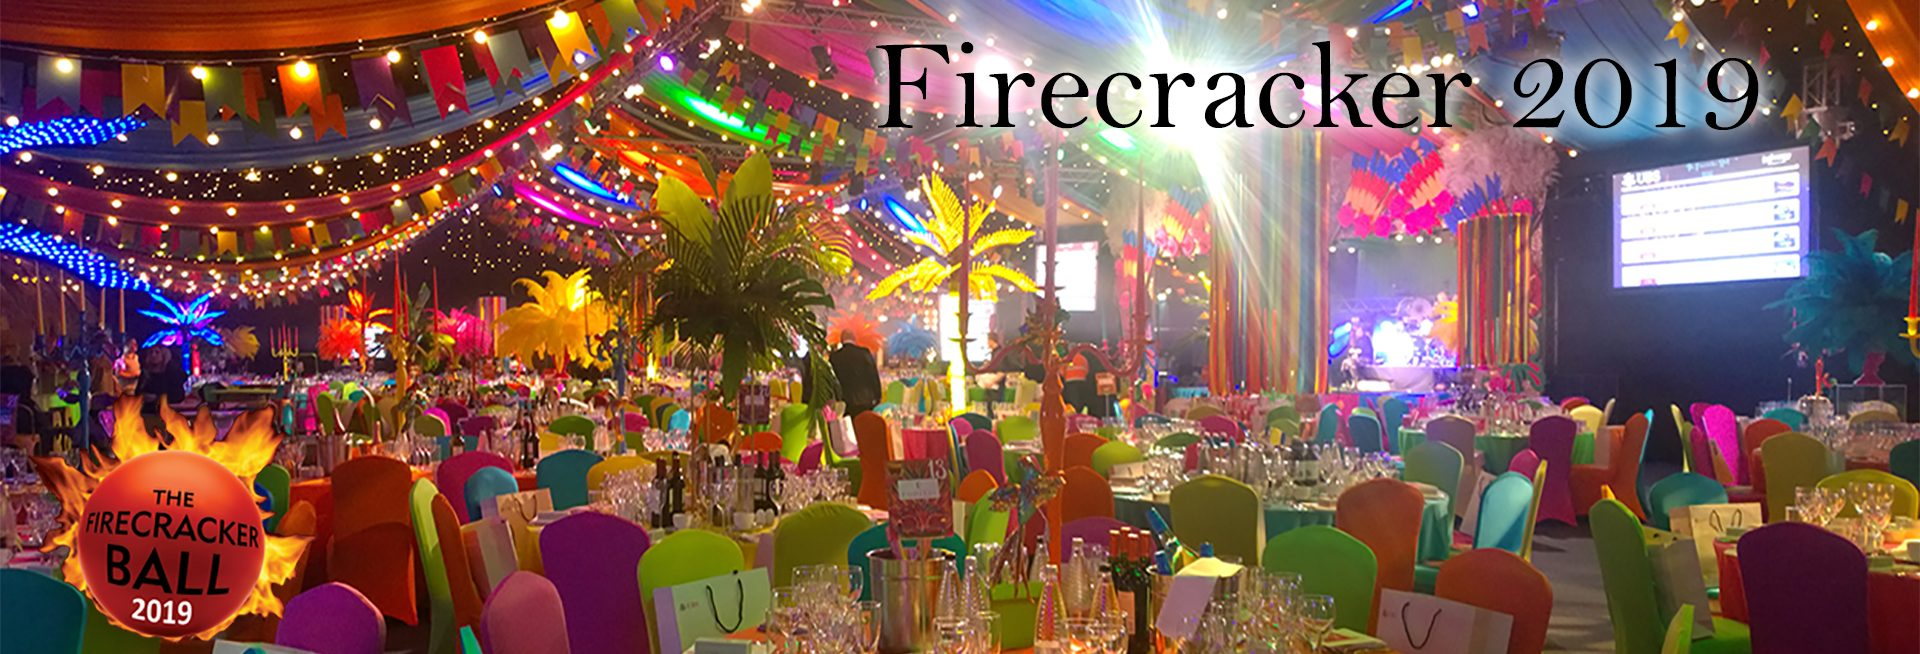 Firecracker Ball 2019